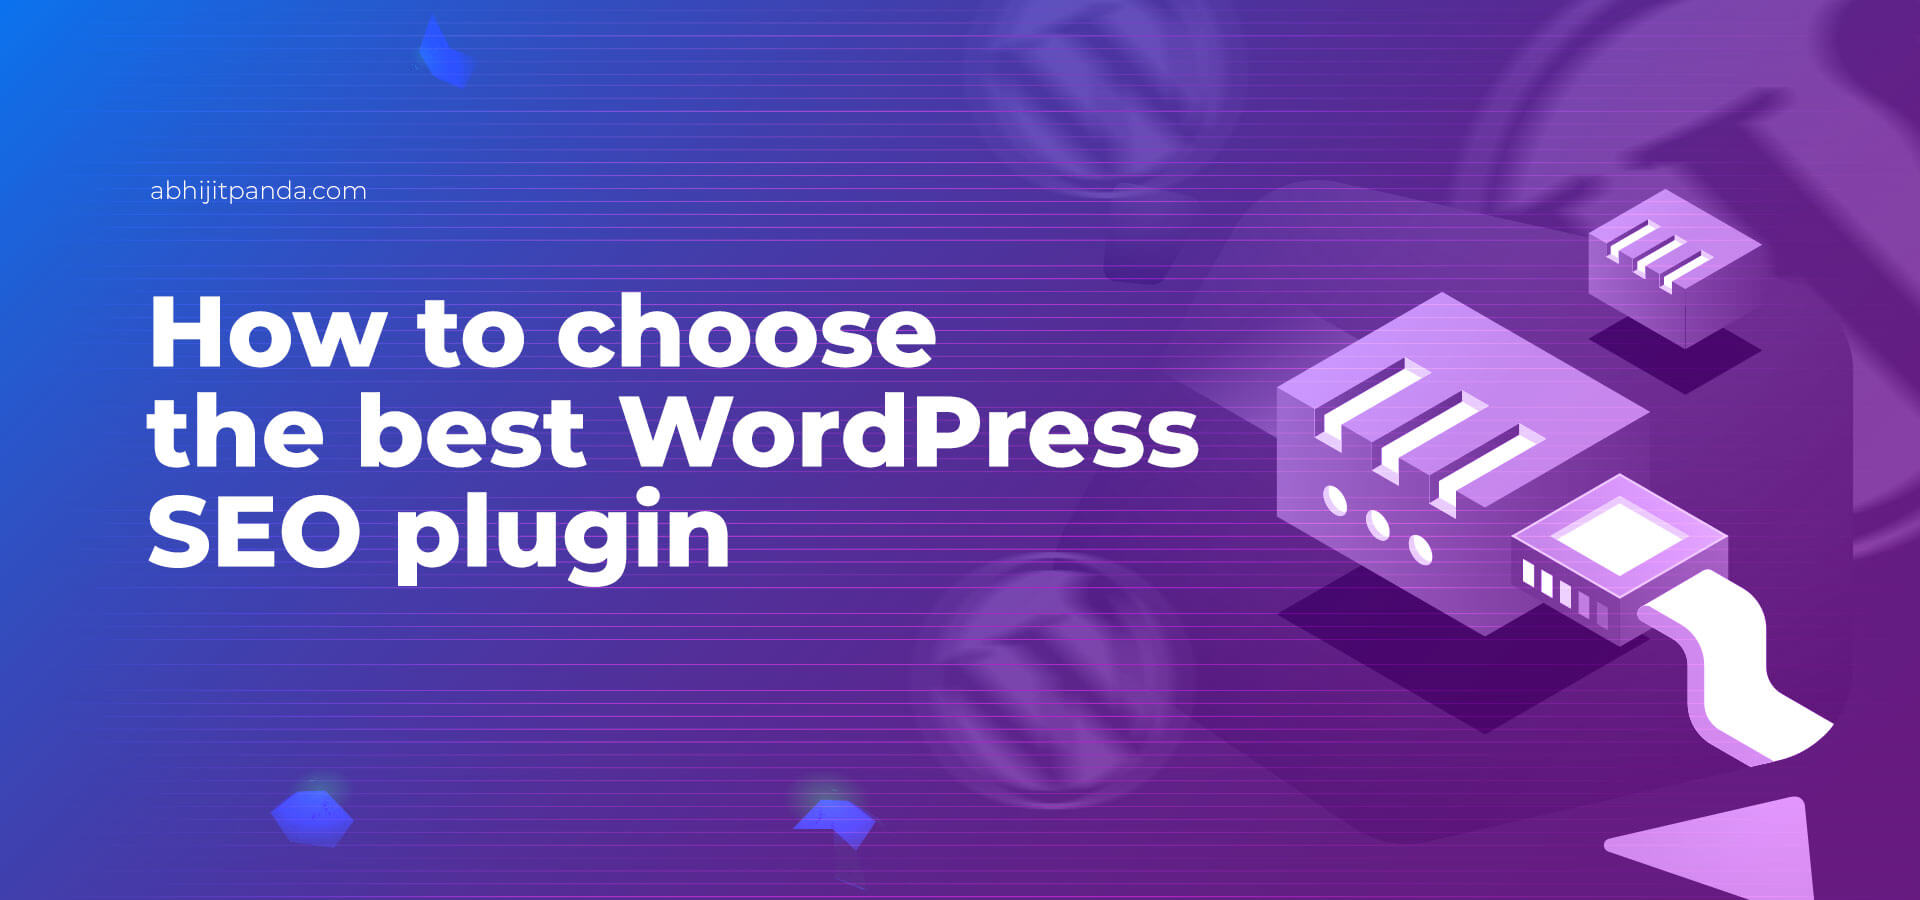 How to choose the best WordPress Plugin